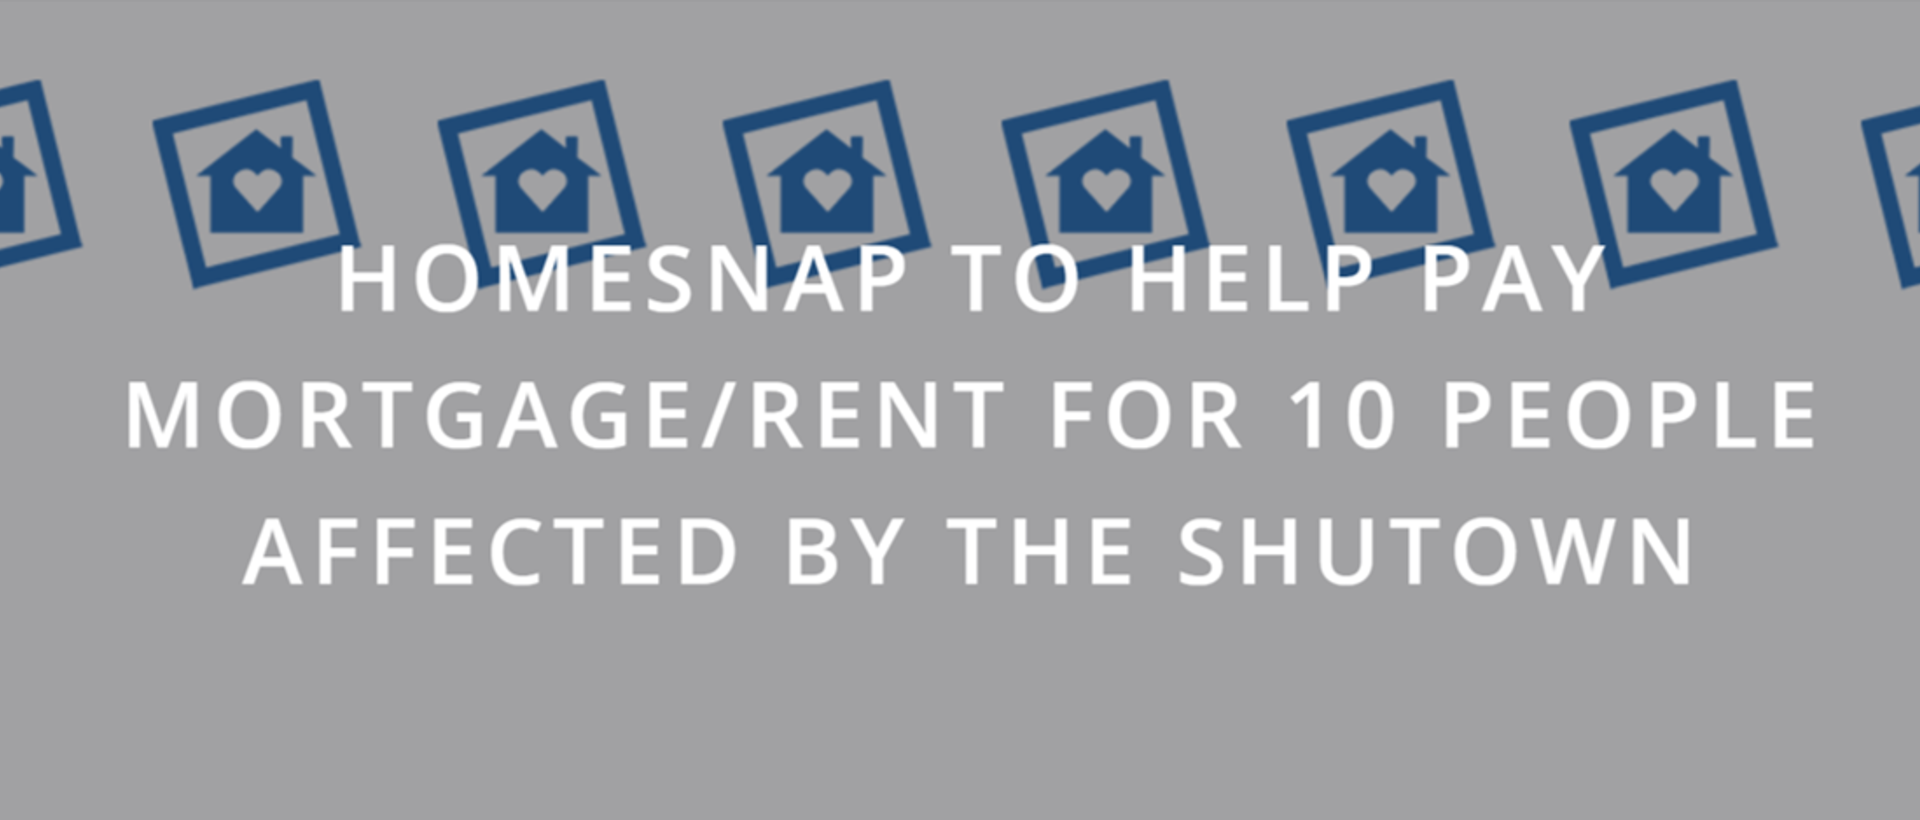 Are you affected by the government shut down? Do you have a mortgage or pay rent?